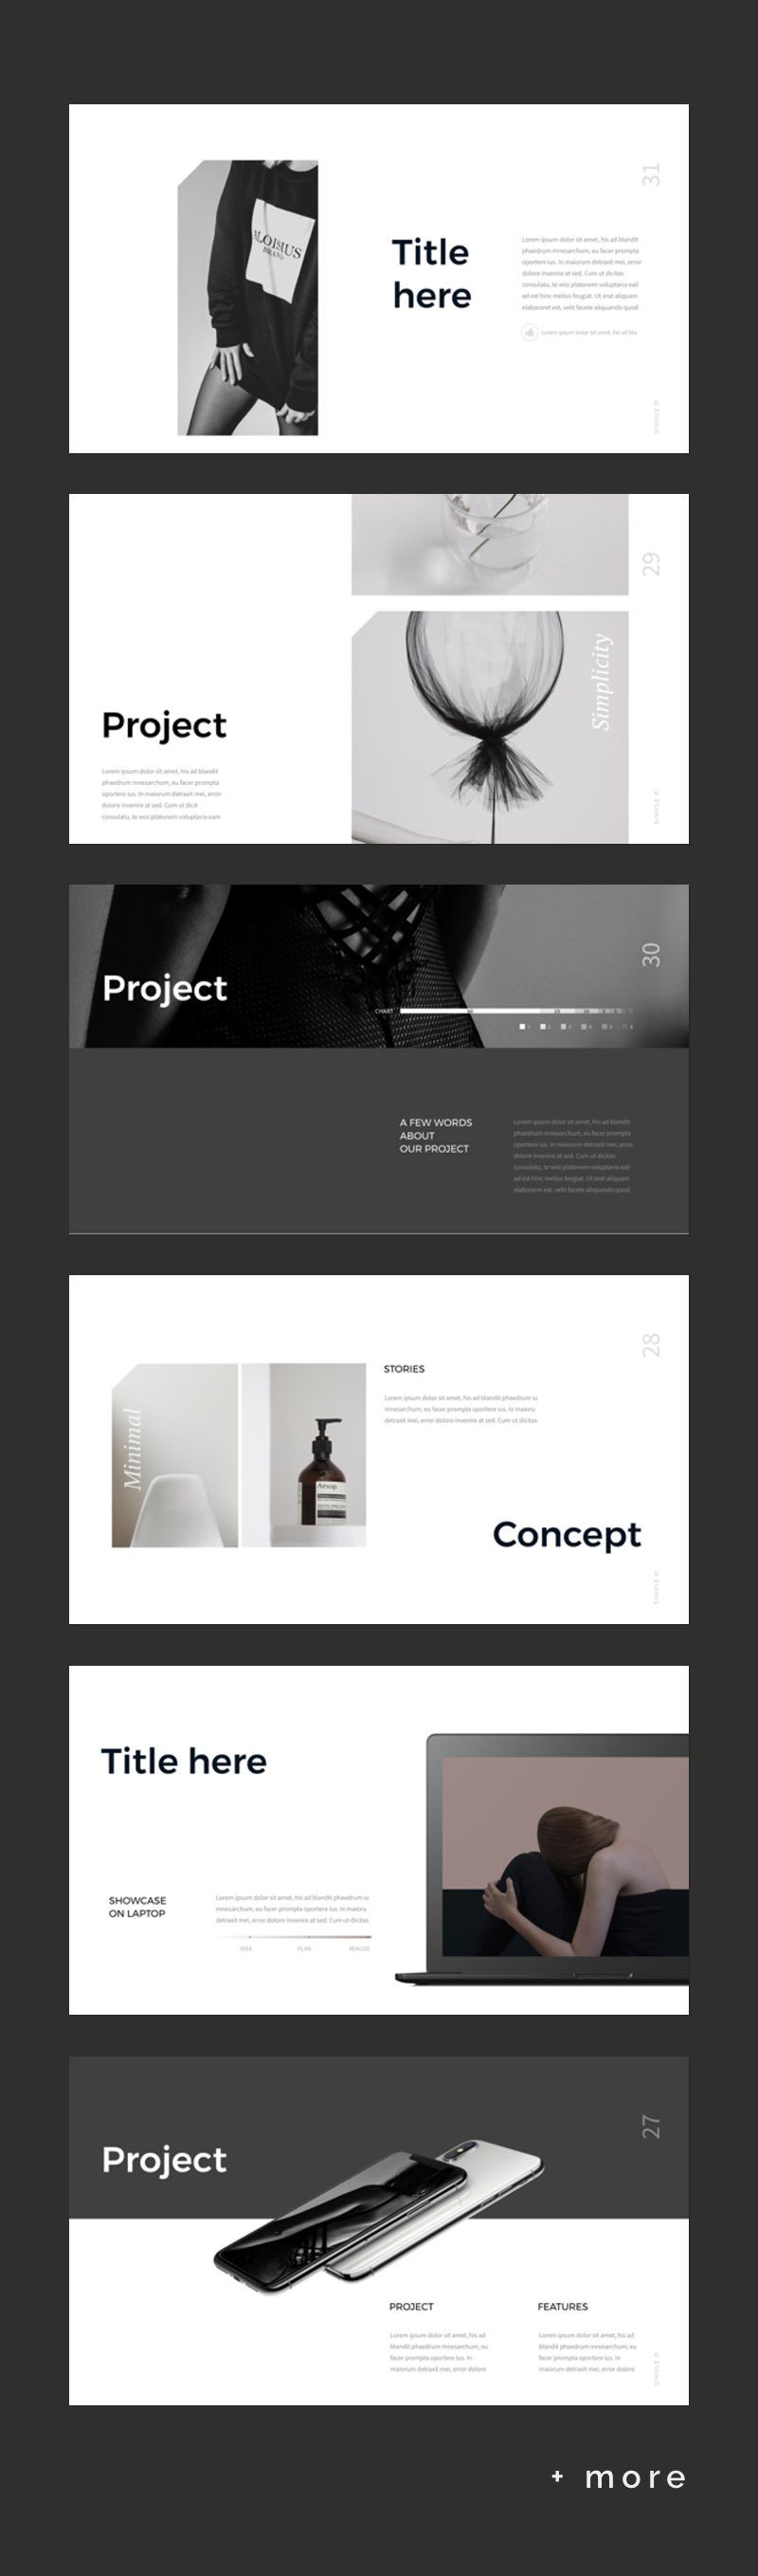 simple minimal presentation template keynote presentation